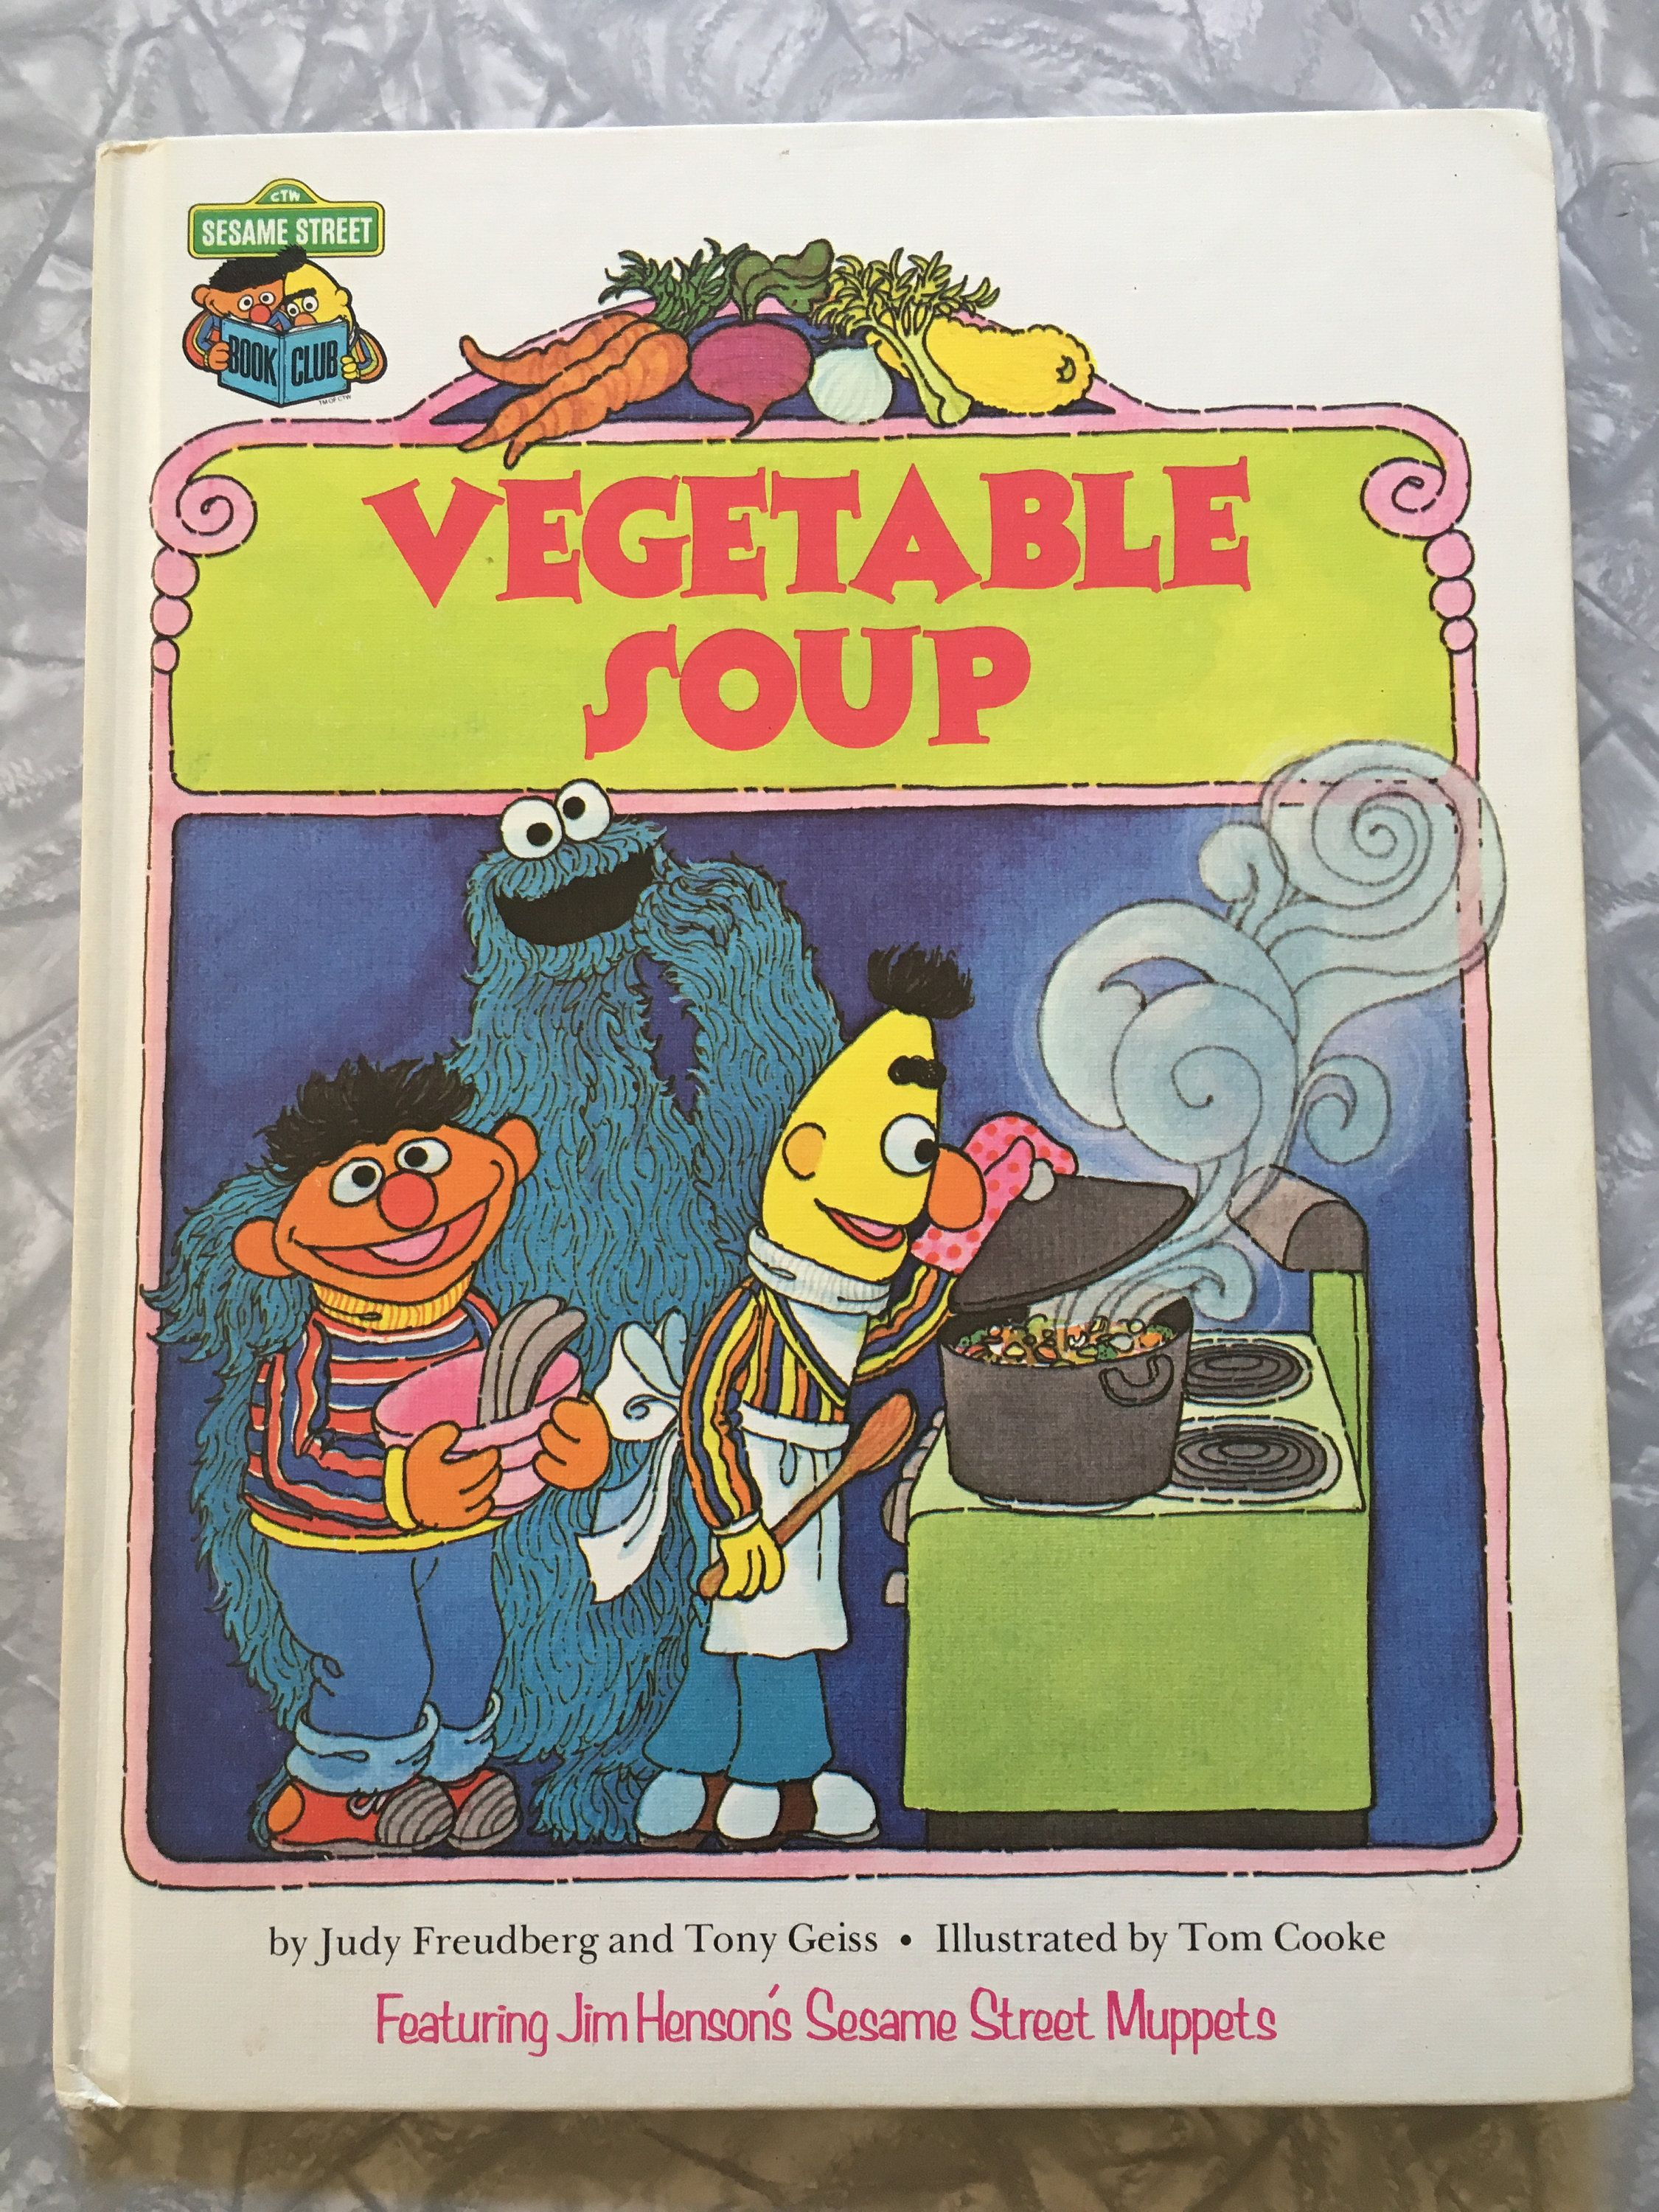 1980 sesame street book club vegetable soup hardcover kids picture book by sweetemotionvintages on etsy